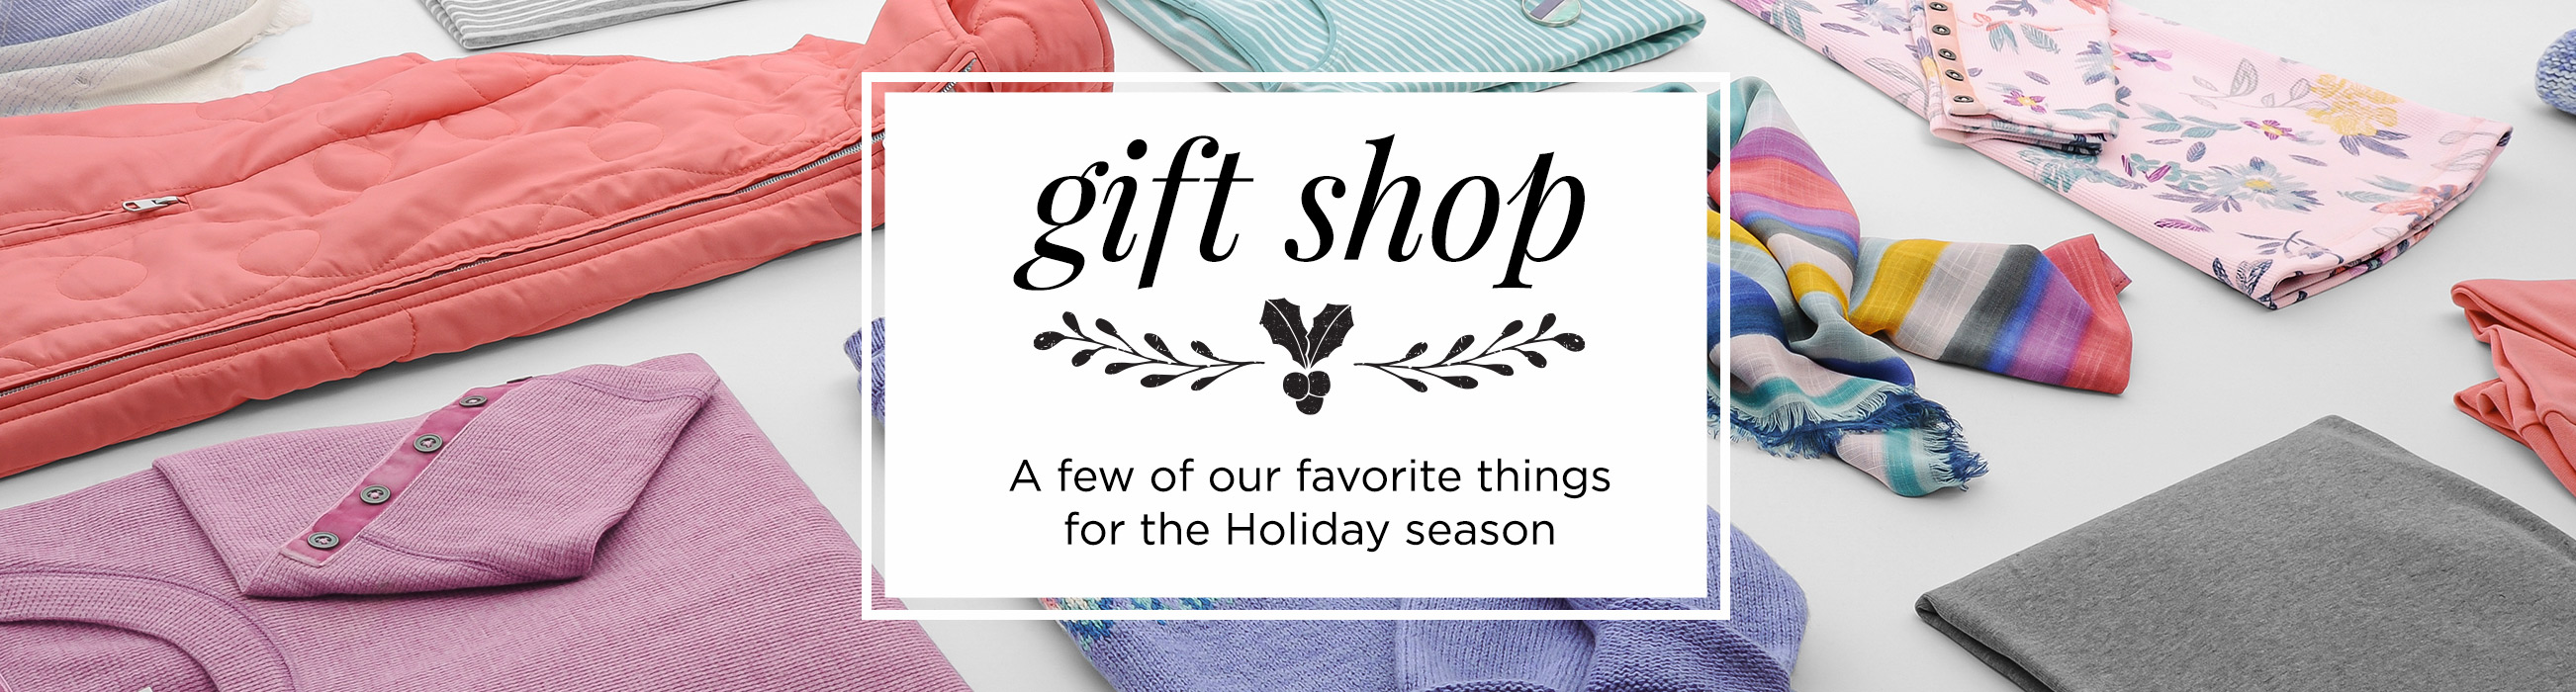 Gift Shop: A Few of Our Favorite Things for the Holiday Season